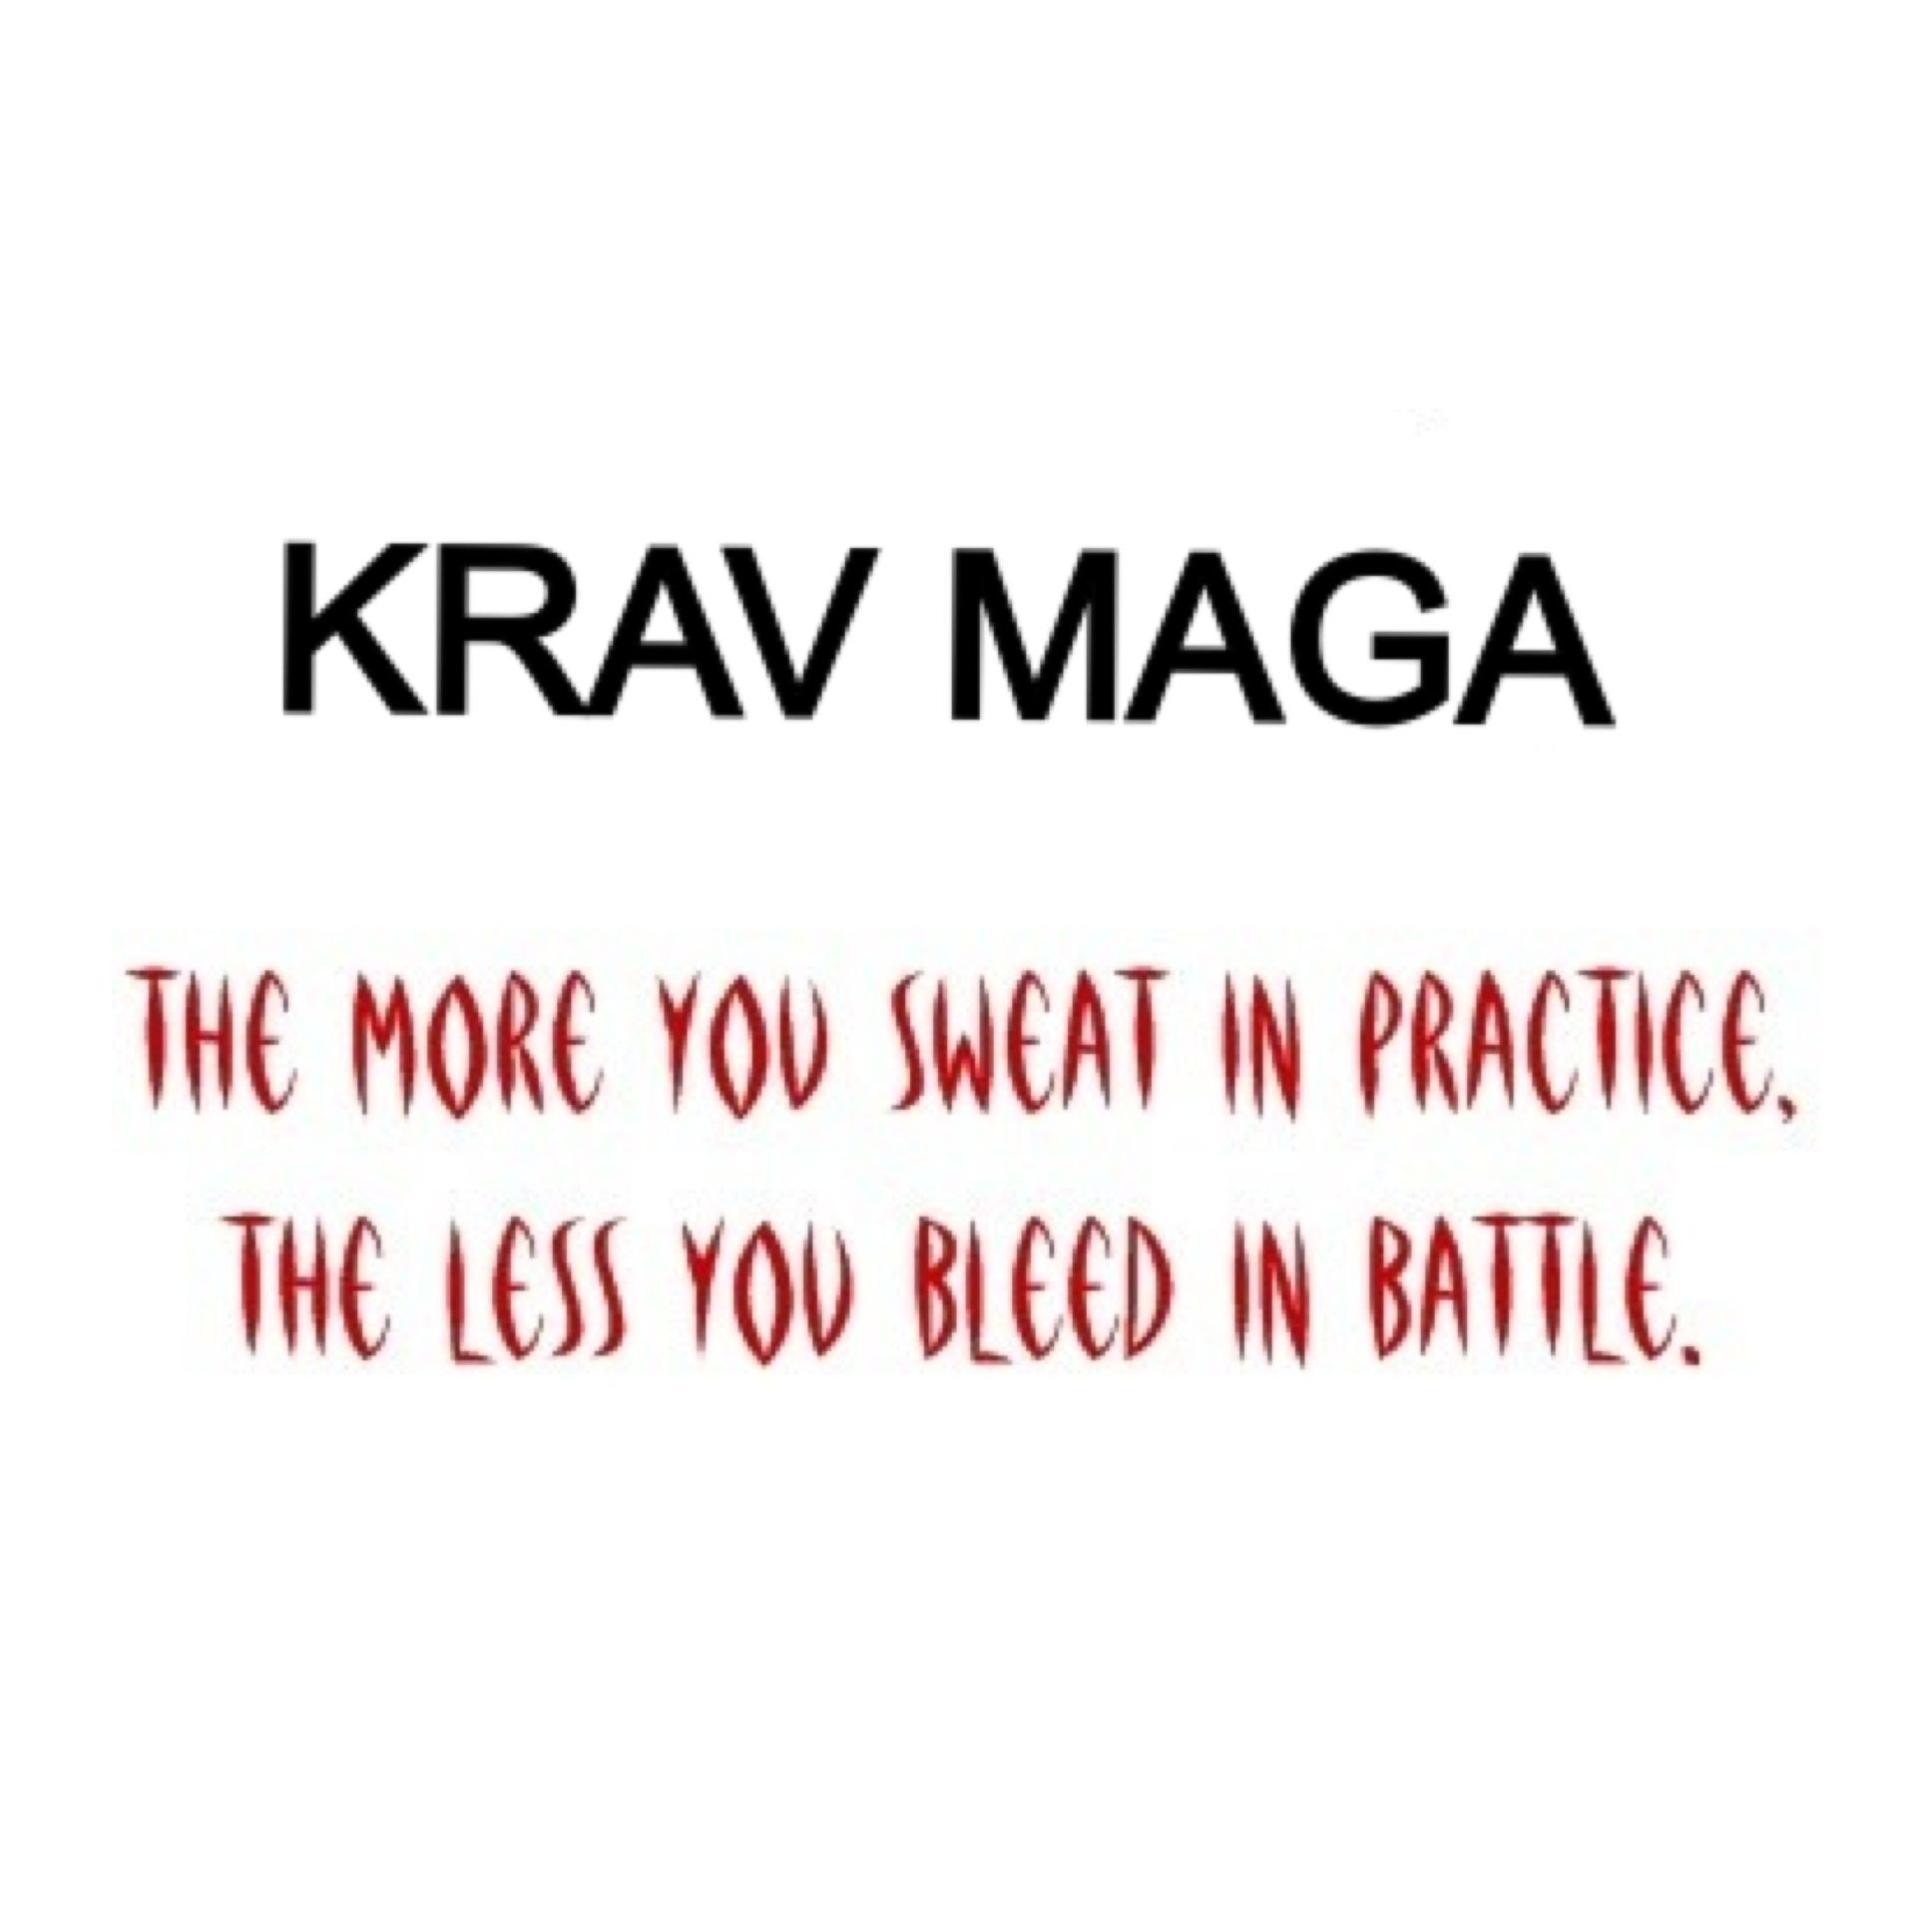 Krav maga the more you sweat in practice the less you bleed in krav maga the more you sweat in practice the less you bleed in battle buycottarizona